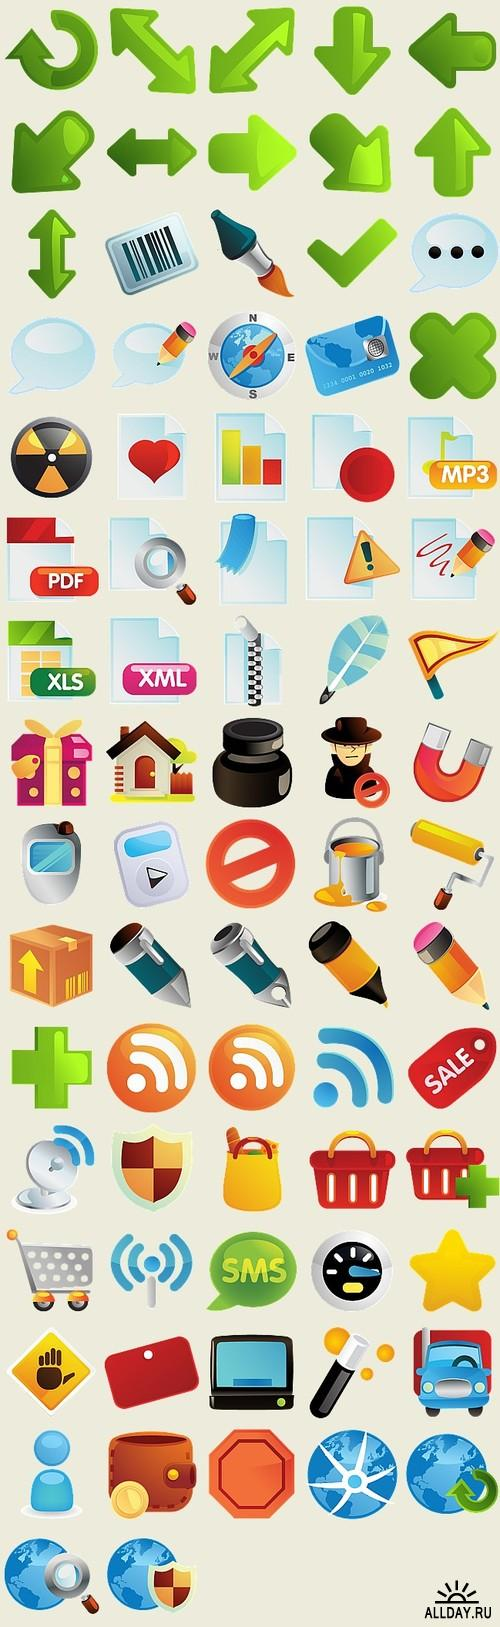 Woothemes Ultimate Icon Set